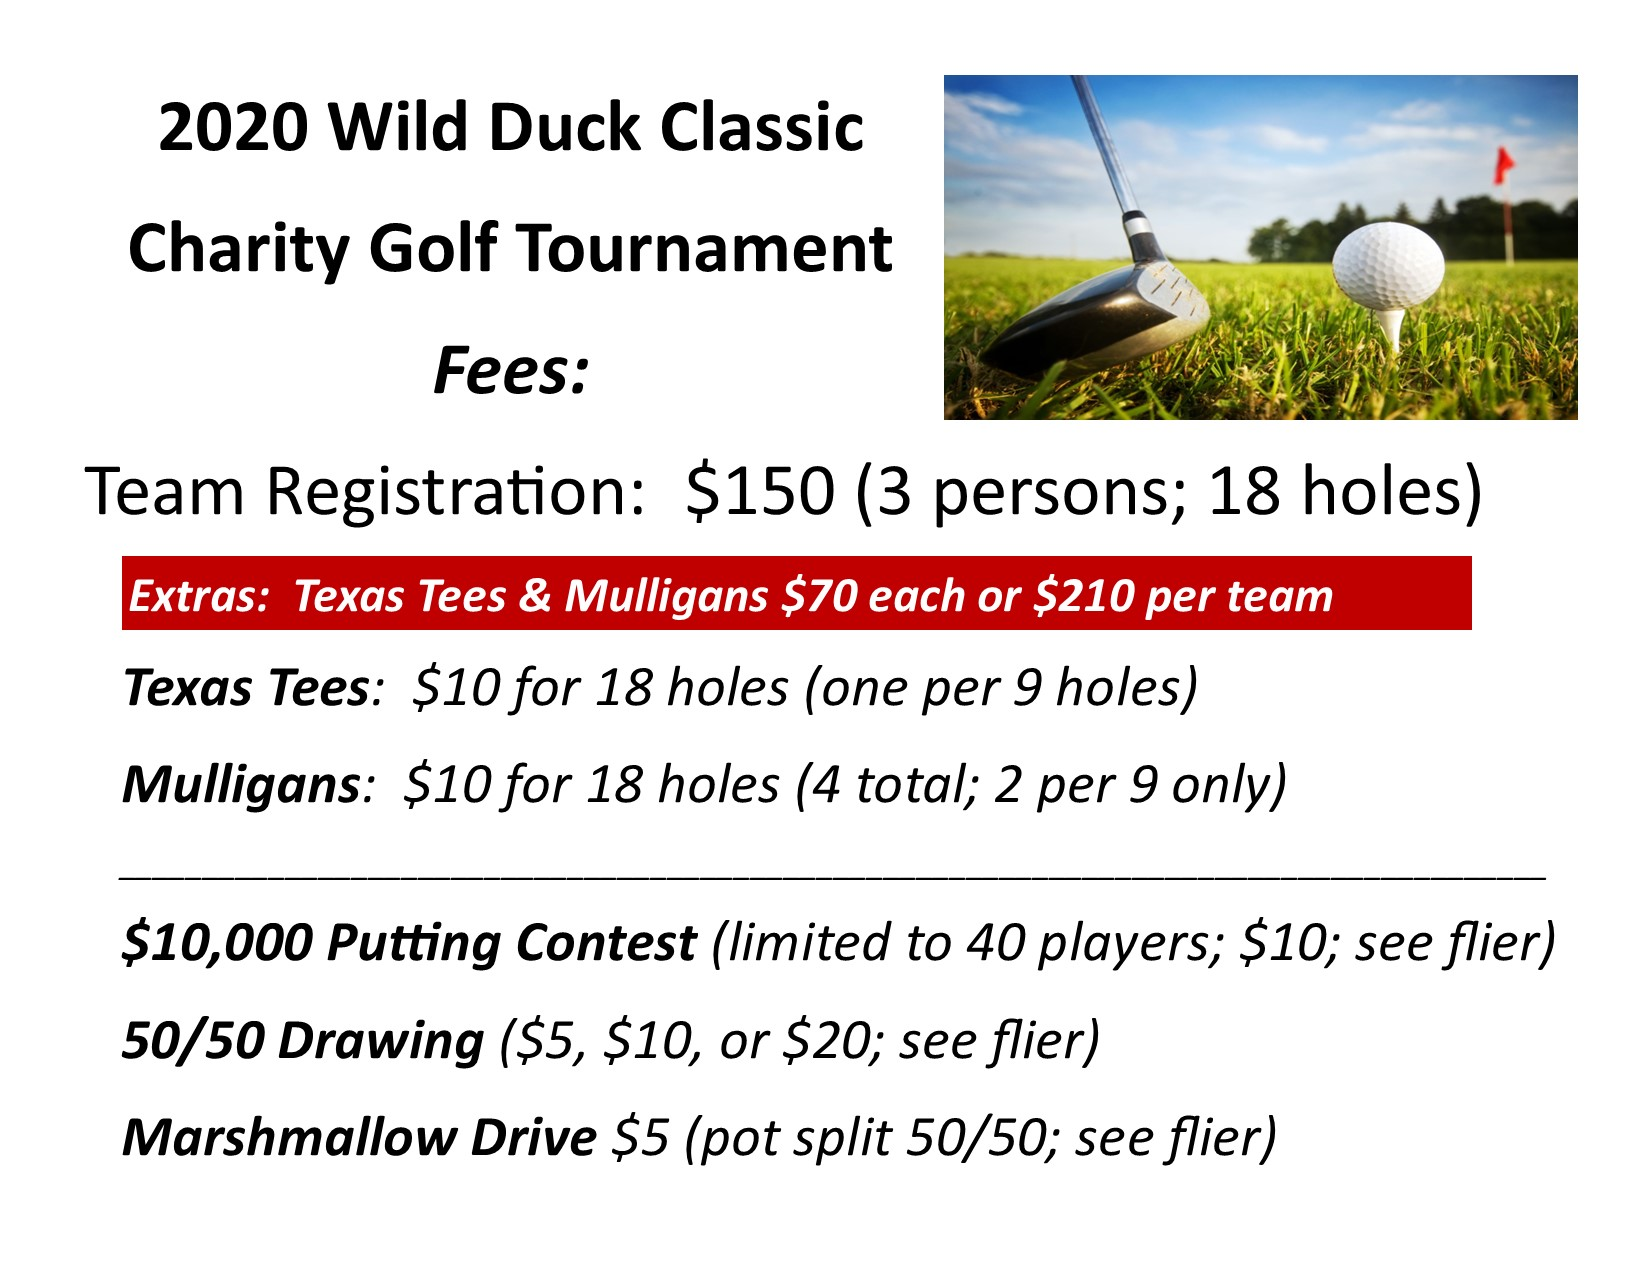 2020 Wild Duck Classic Golf Tournament Fees